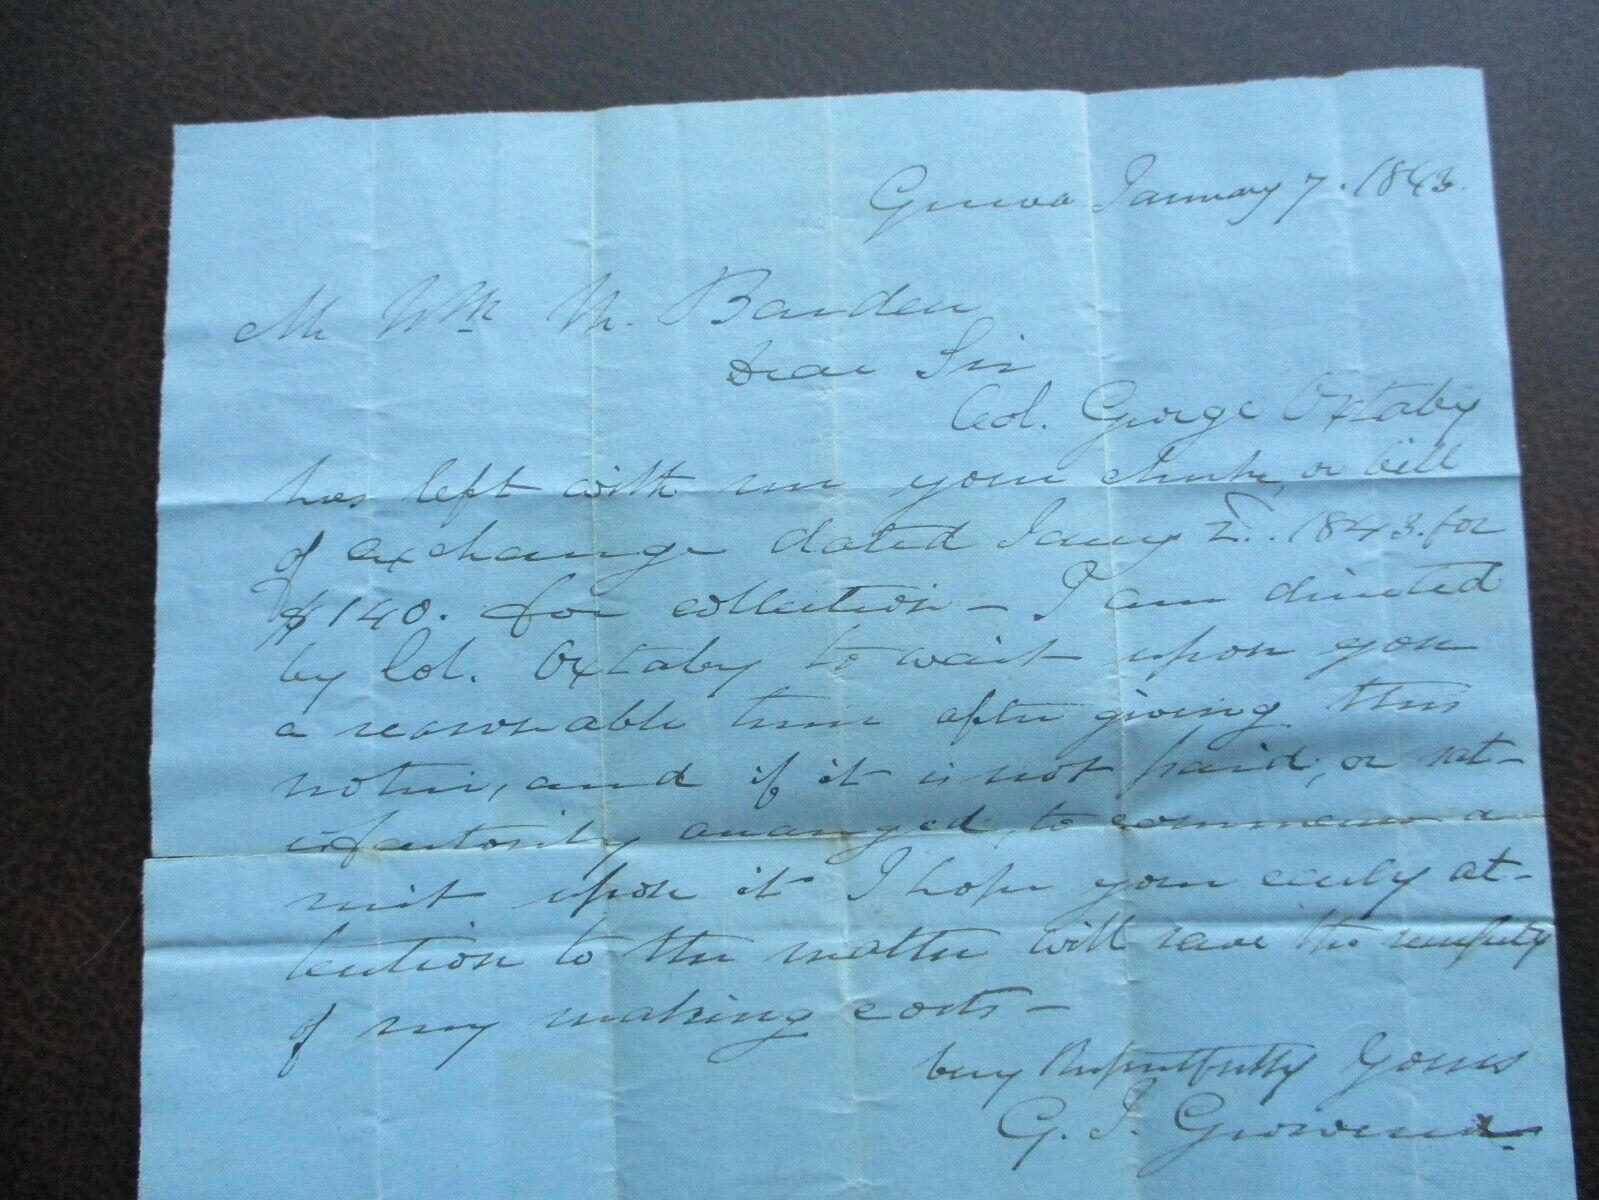 1843 Col. Oxtoby Benton,New York Signed G.Grovenor To Wm. Barden Stampless Cover - $19.99